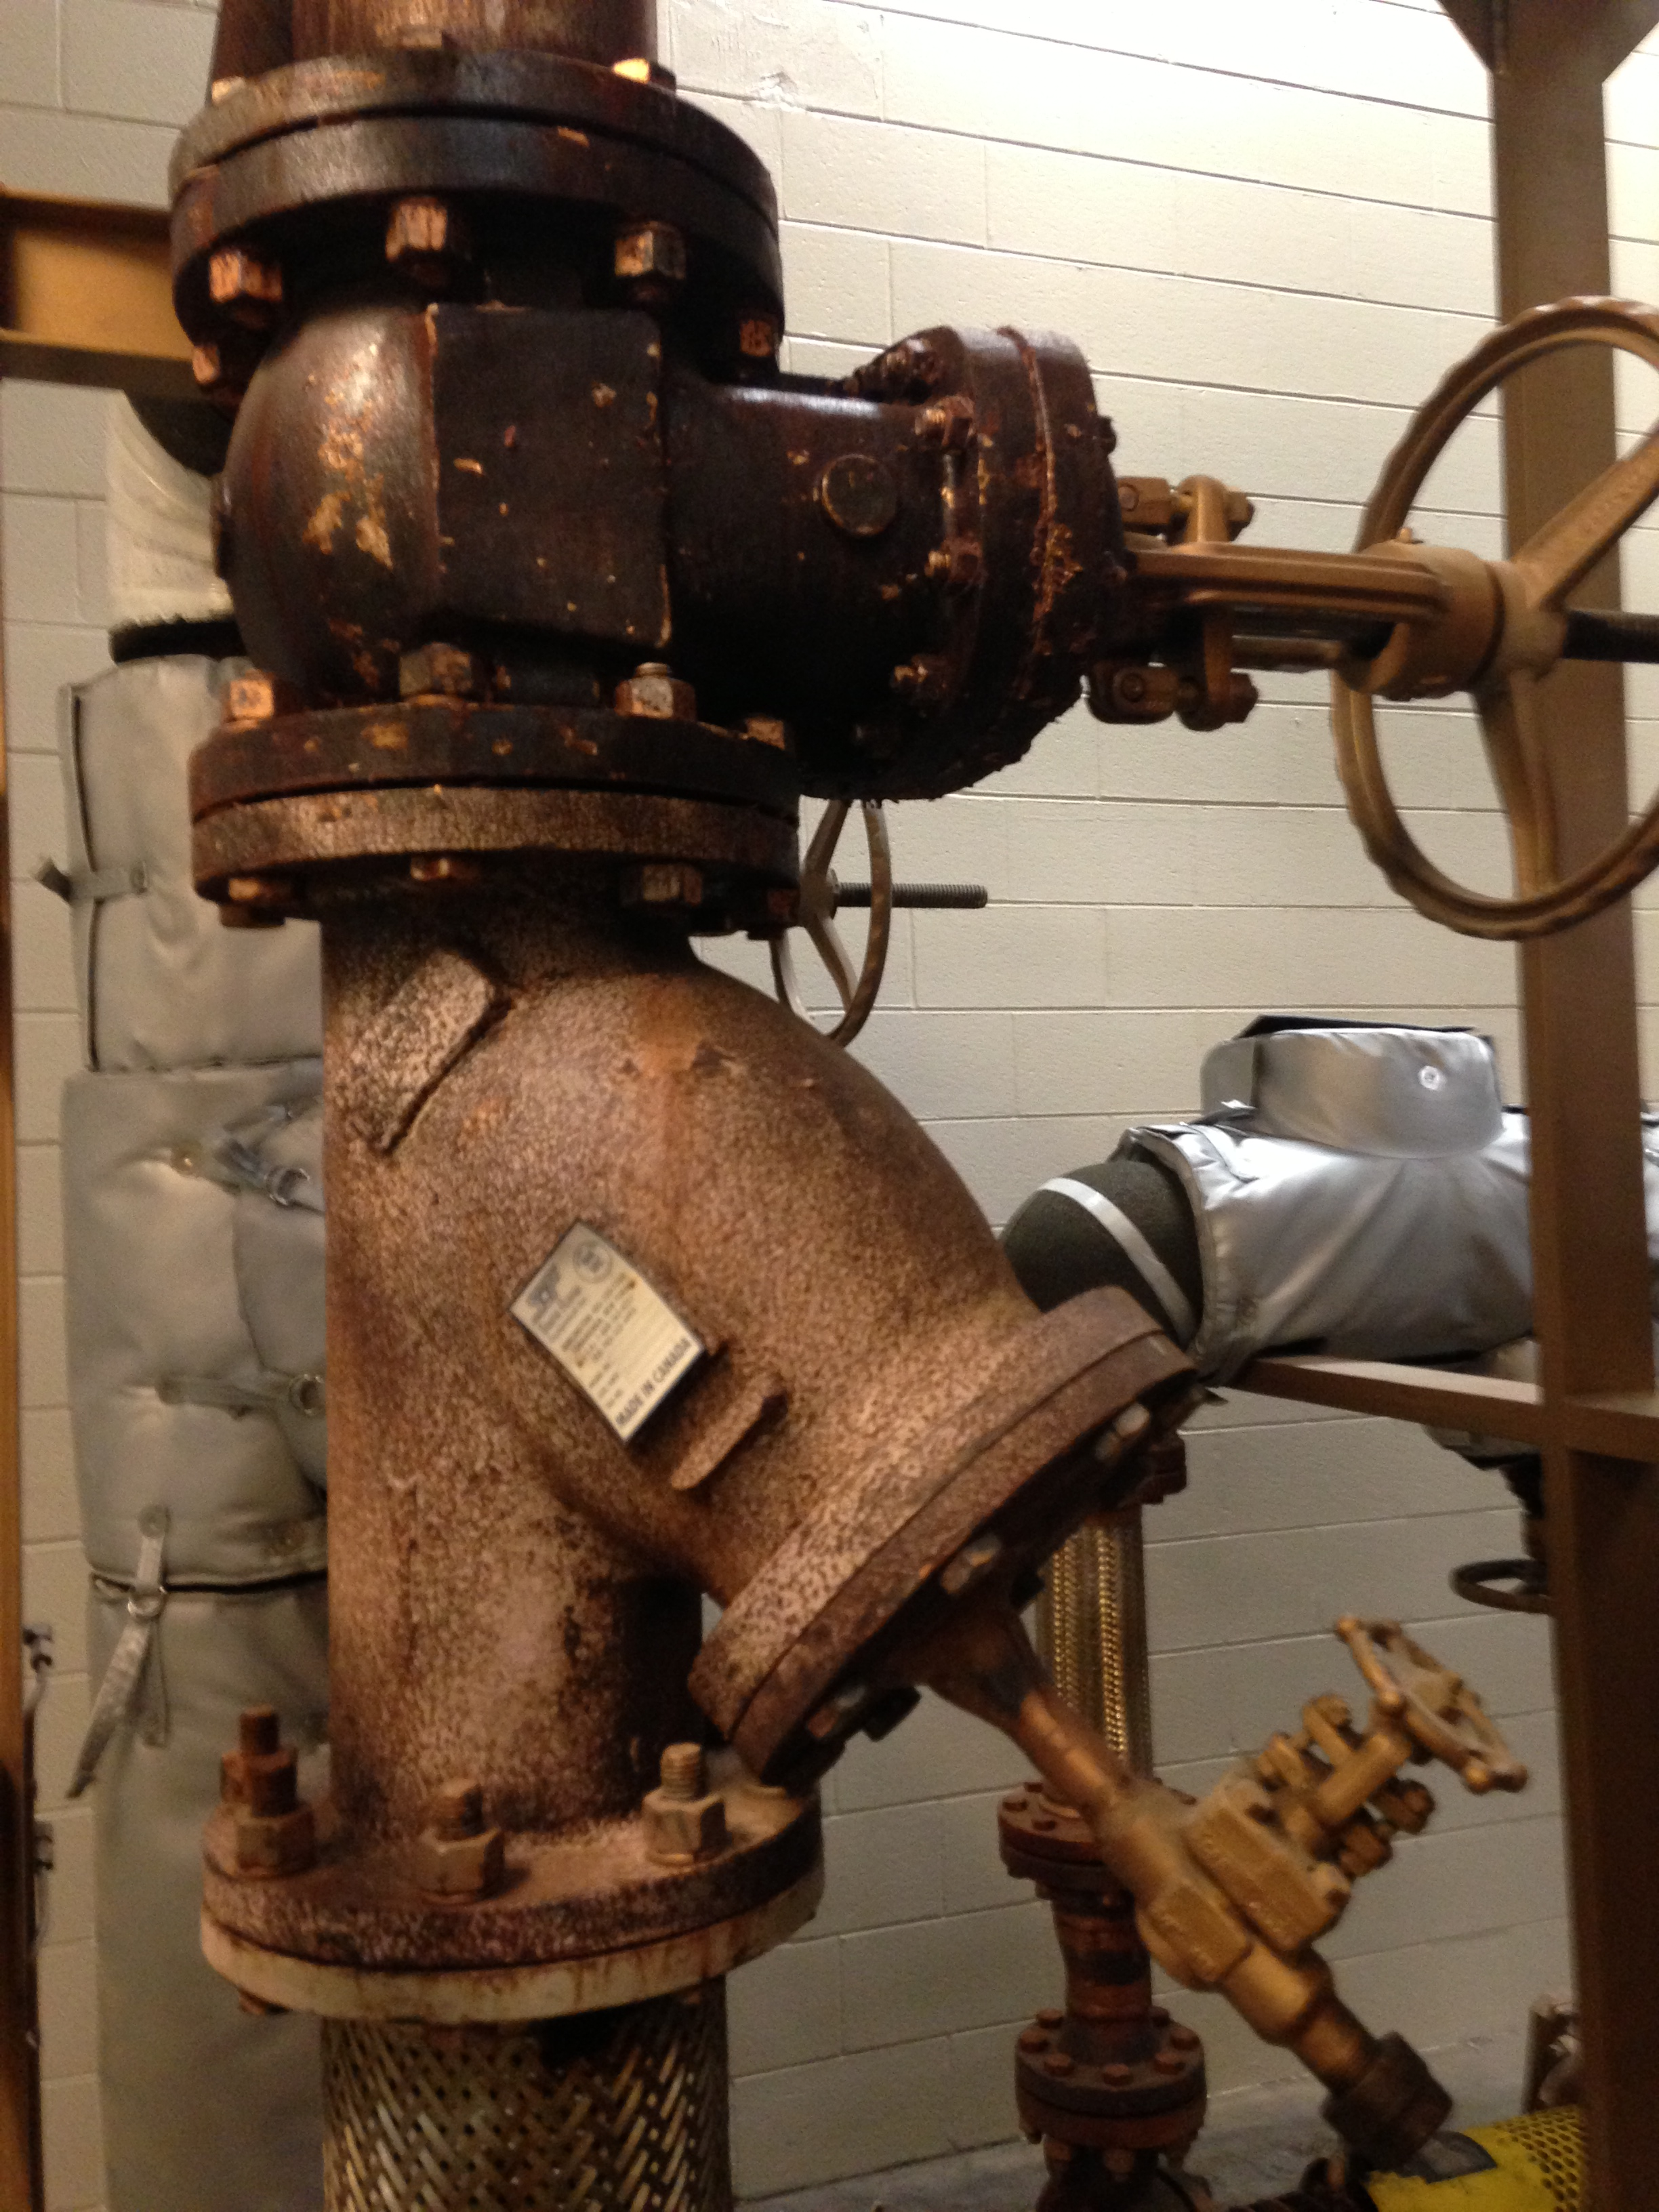 Before Removable Insulation Blankets For Valve Strainer And File Pipe